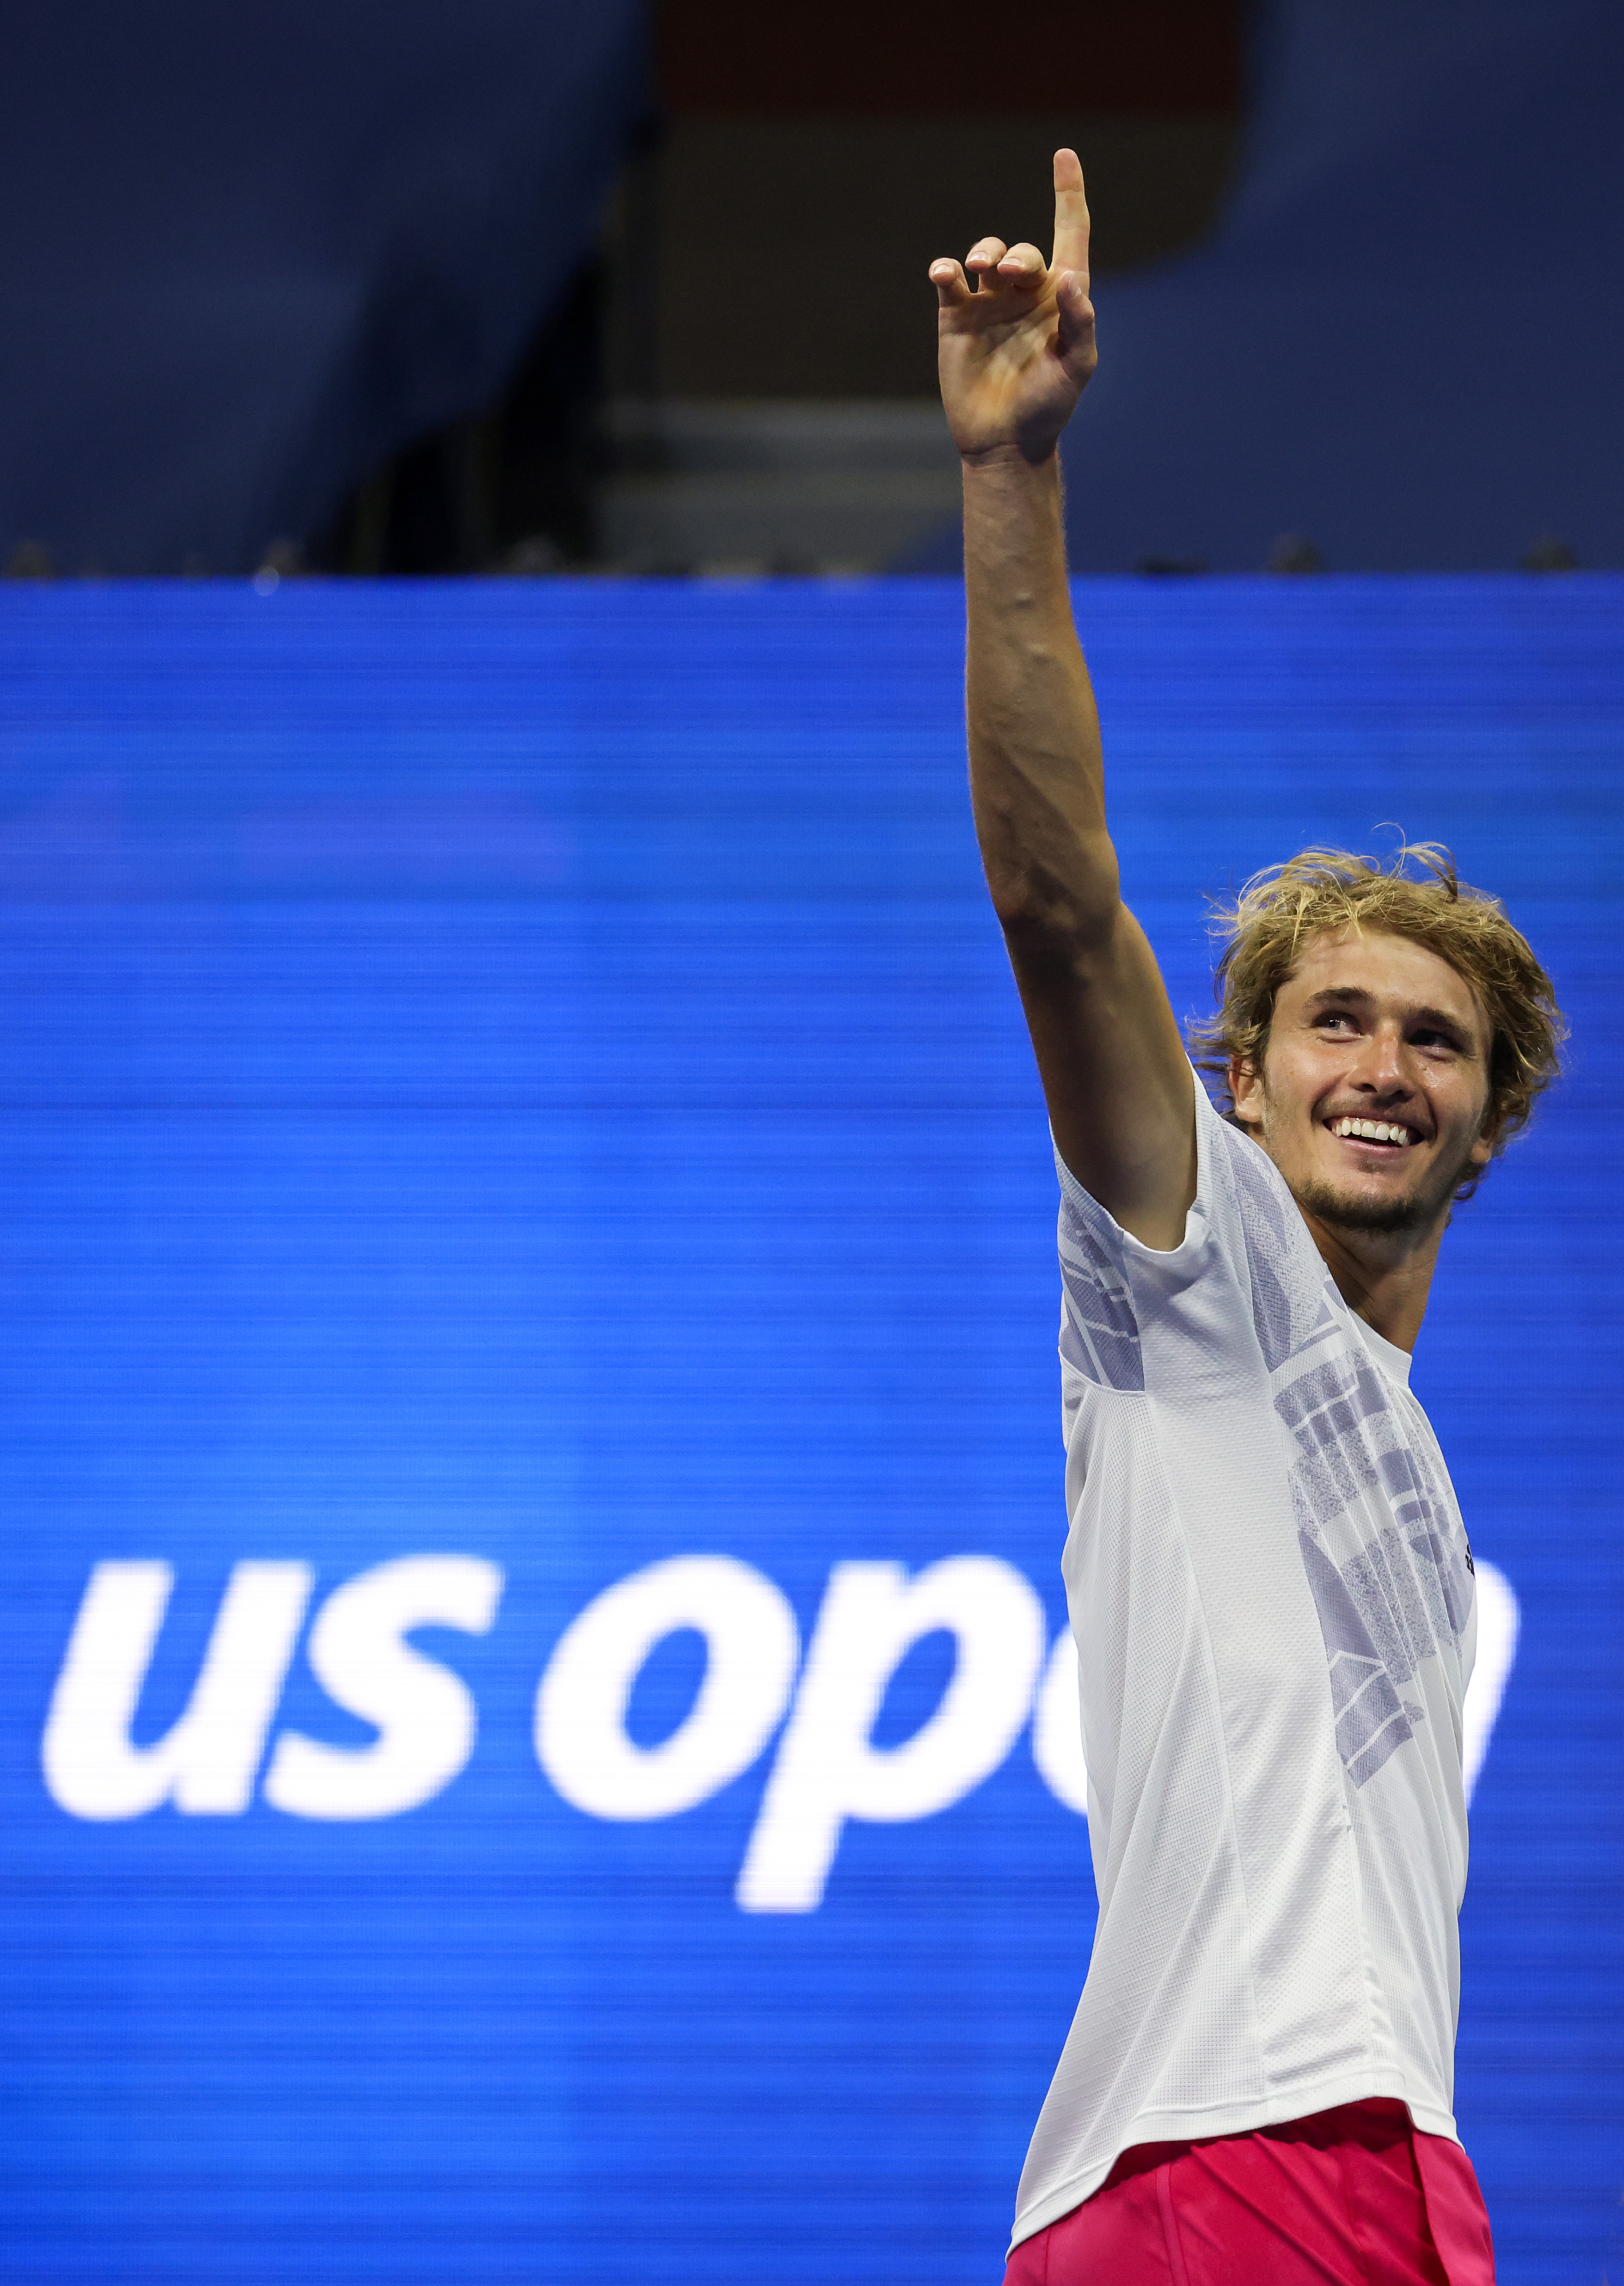 Alexander Zverev And Dominic Thiem Reach Us Open Final The Boston Globe